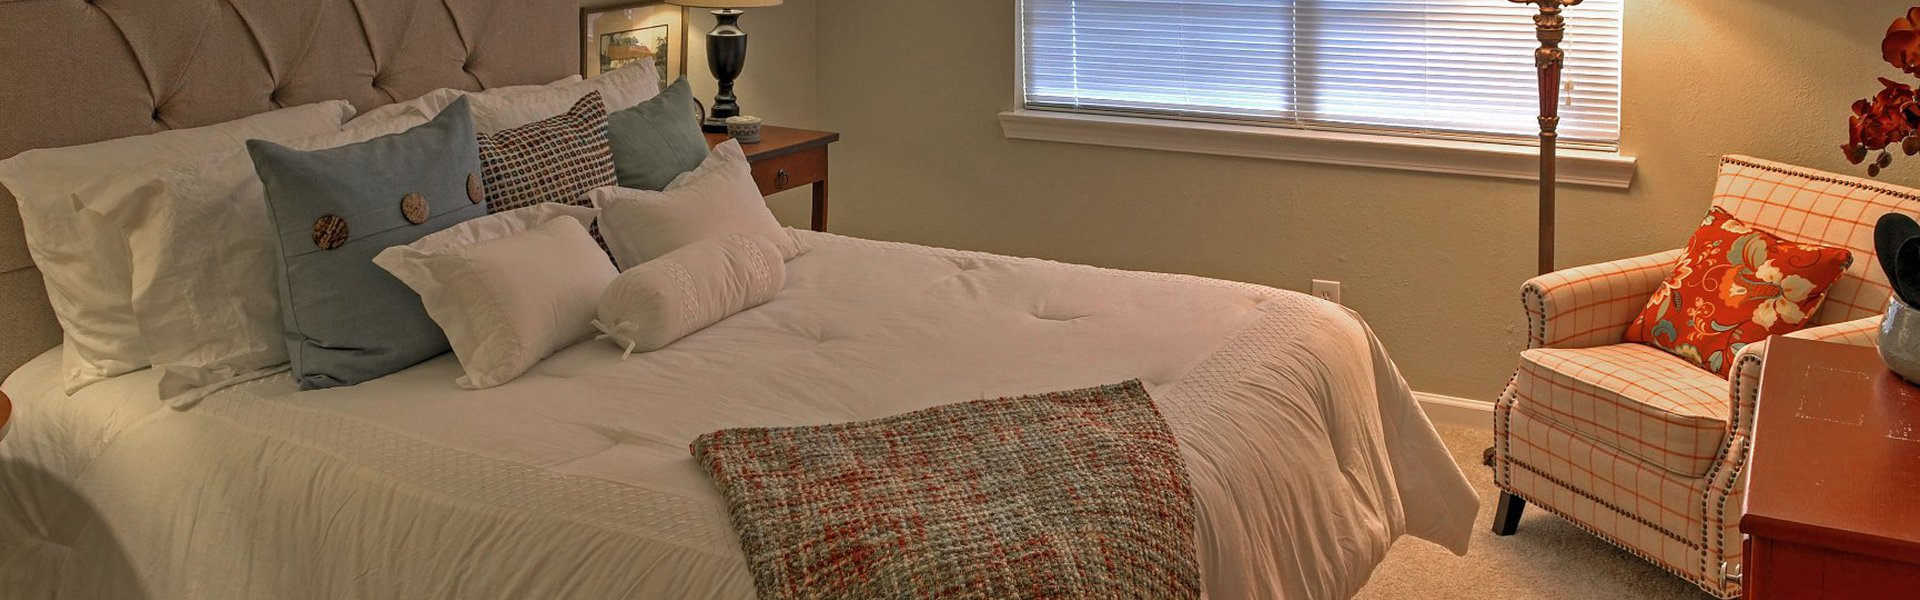 Westside Commons interior apartment. Spacious room with queen bed and night table